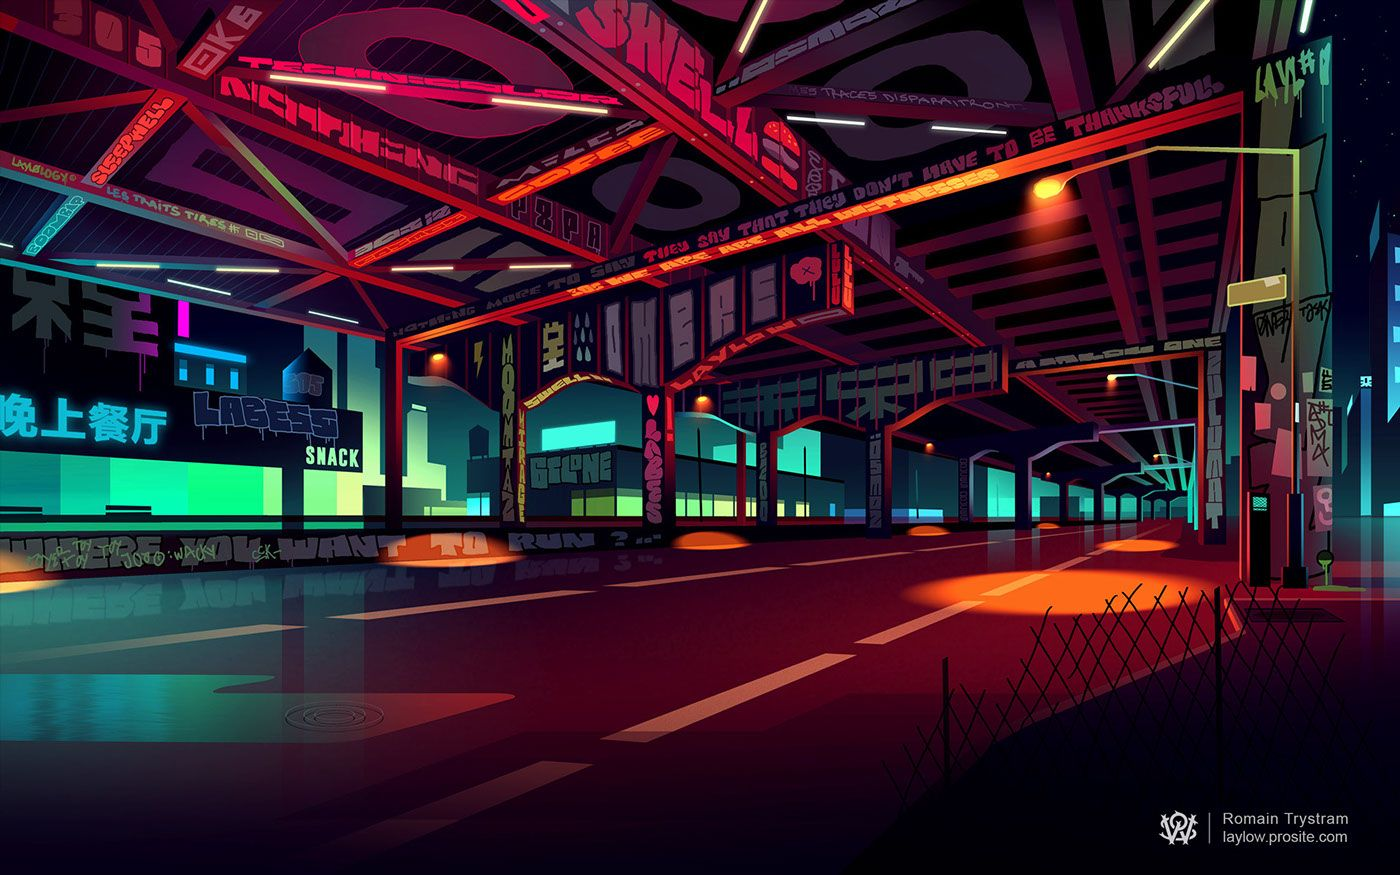 Wetransfer wallpaper by Romain Trystram